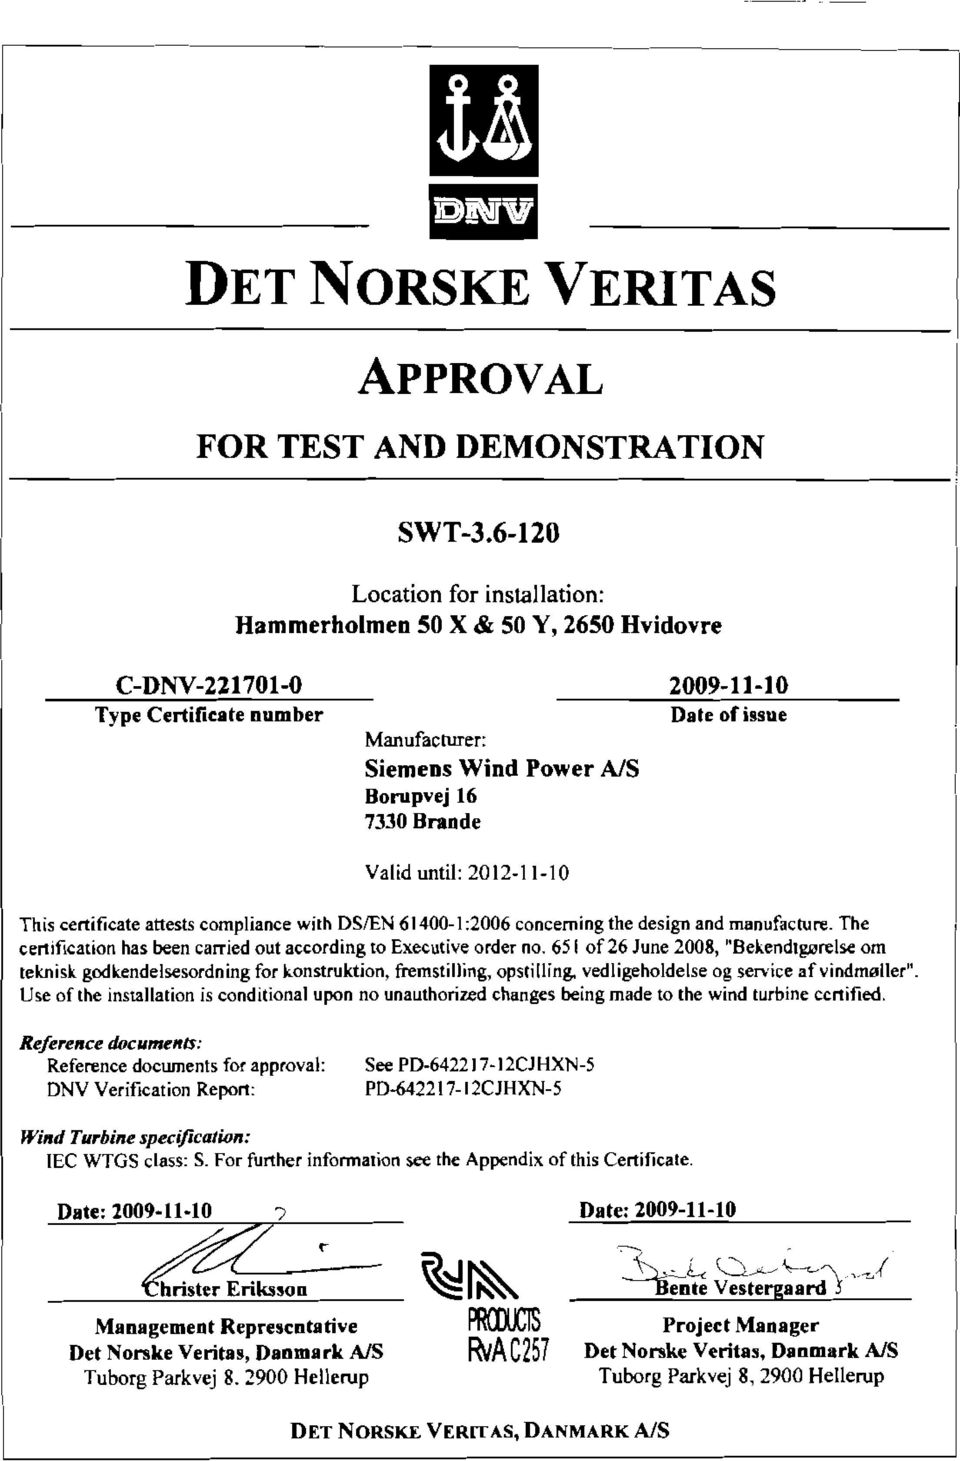 issue This certificate attests compliance with DSIEN 61400-1 :2006 concerning the design and manufacture. The certification has been carried out according to Executive order no.